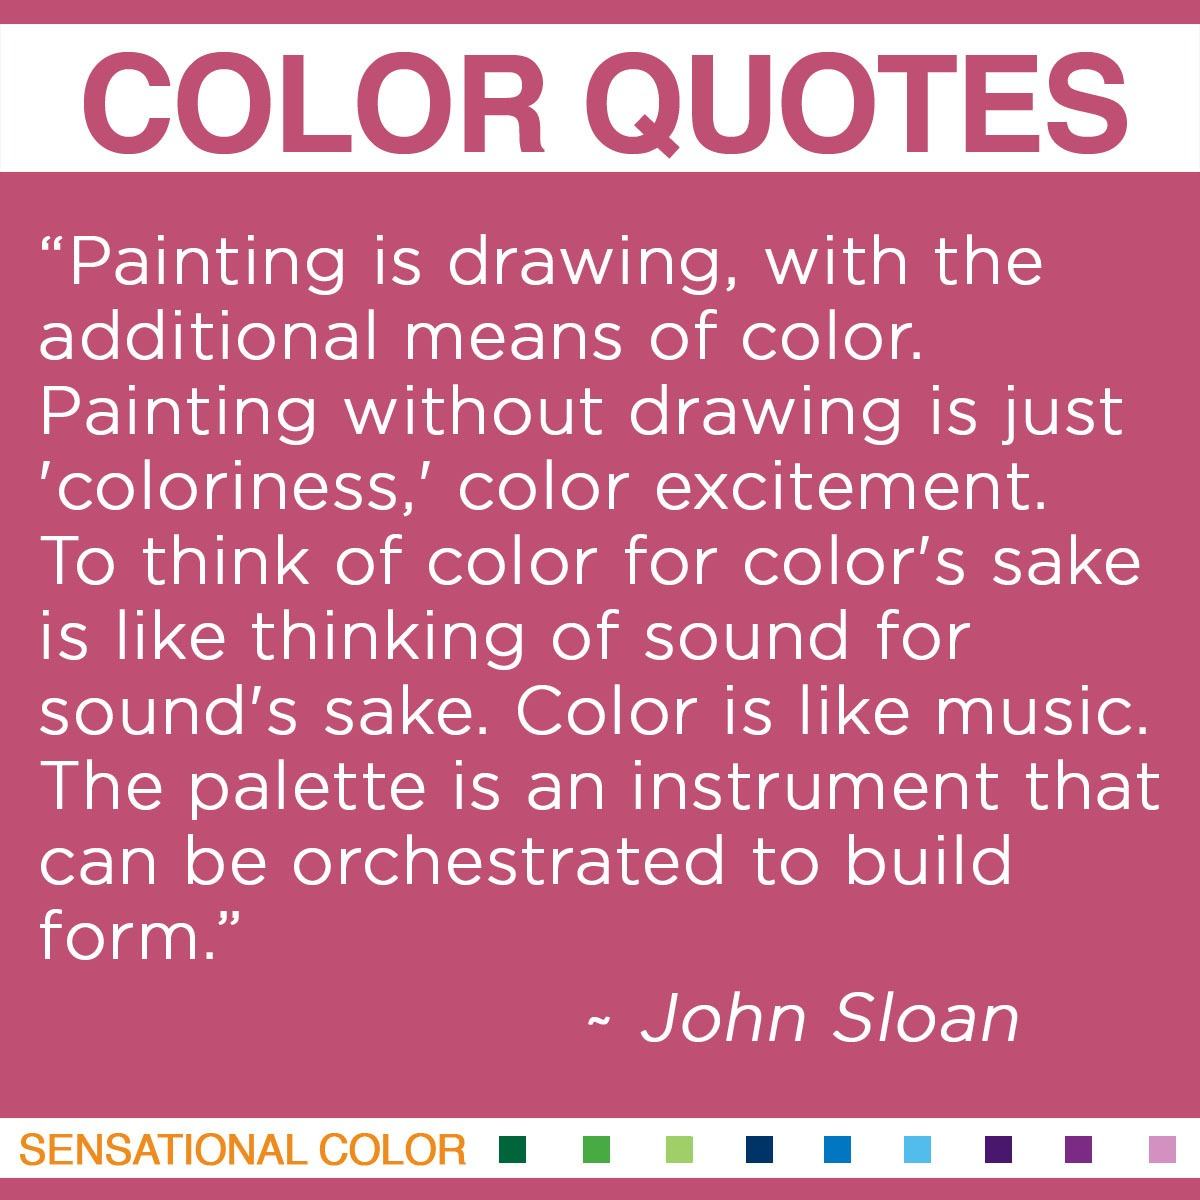 """Painting is drawing, with the additional means of color. Painting without drawing is just 'coloriness,' color excitement. To think of color for color's sake is like thinking of sound for sound's sake. Color is like music. The palette is an instrument that can be orchestrated to build form.""  - John Sloan"